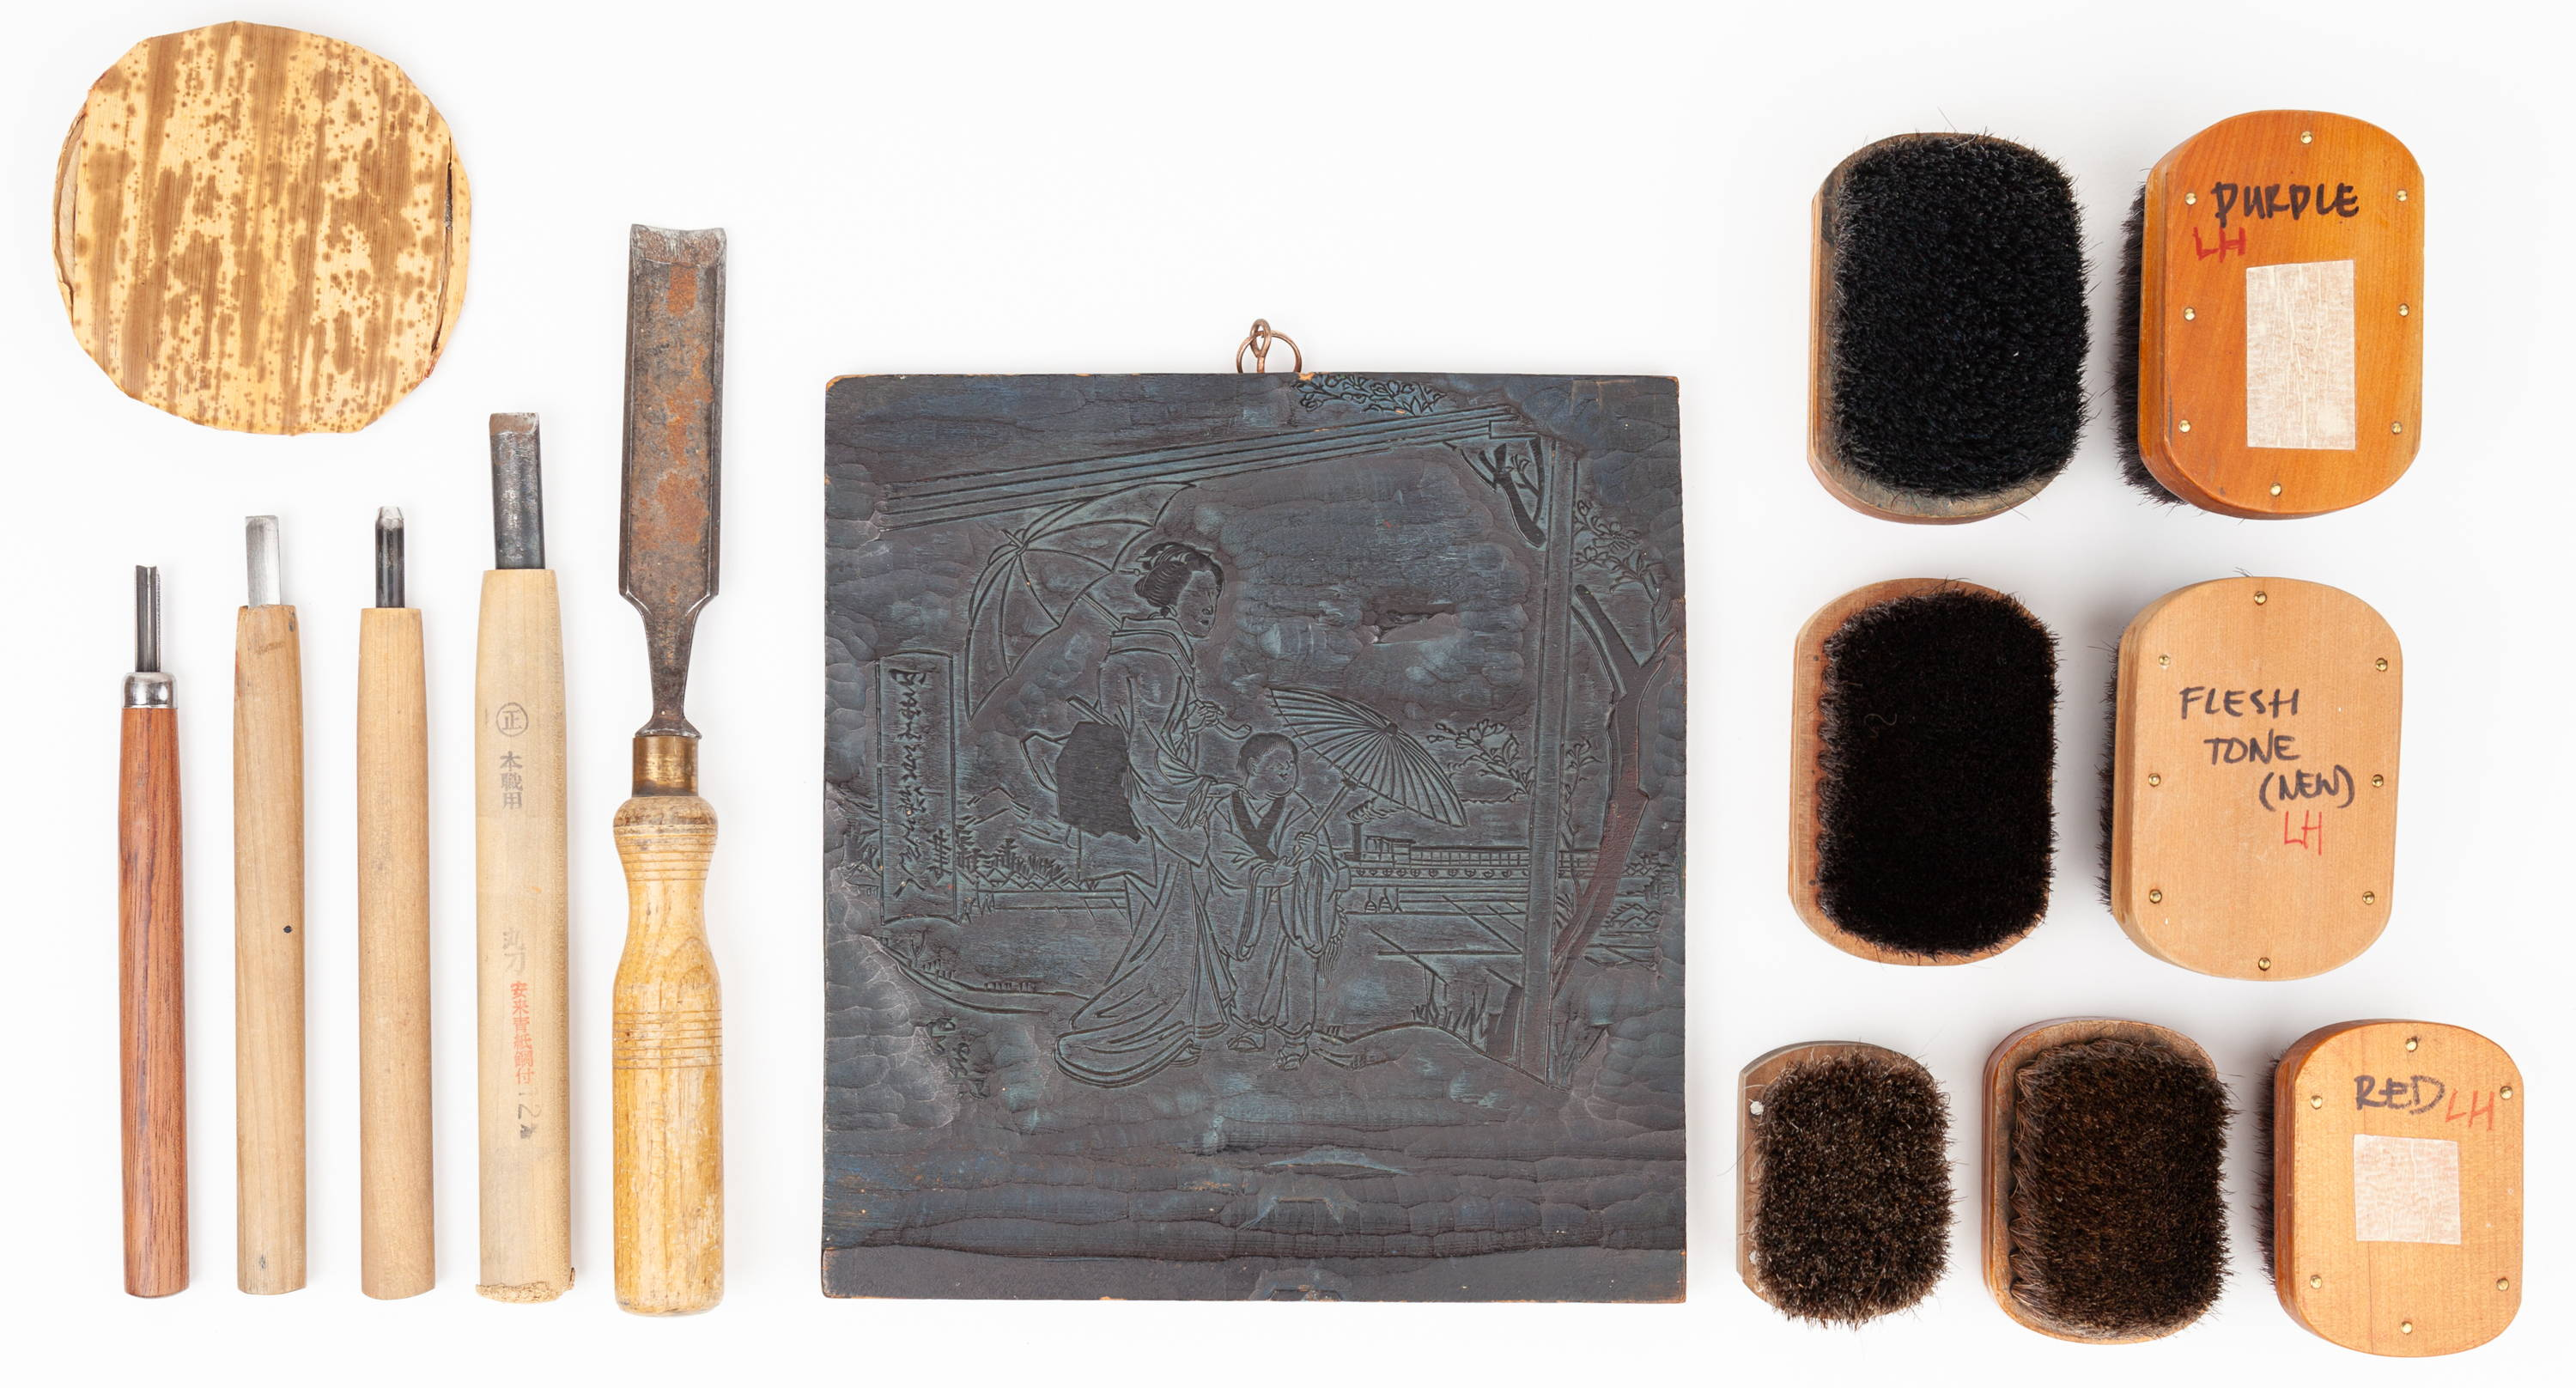 Tools in making ukiyo-e woodblock prints. Includes knives, chisels, brushes and wood block.